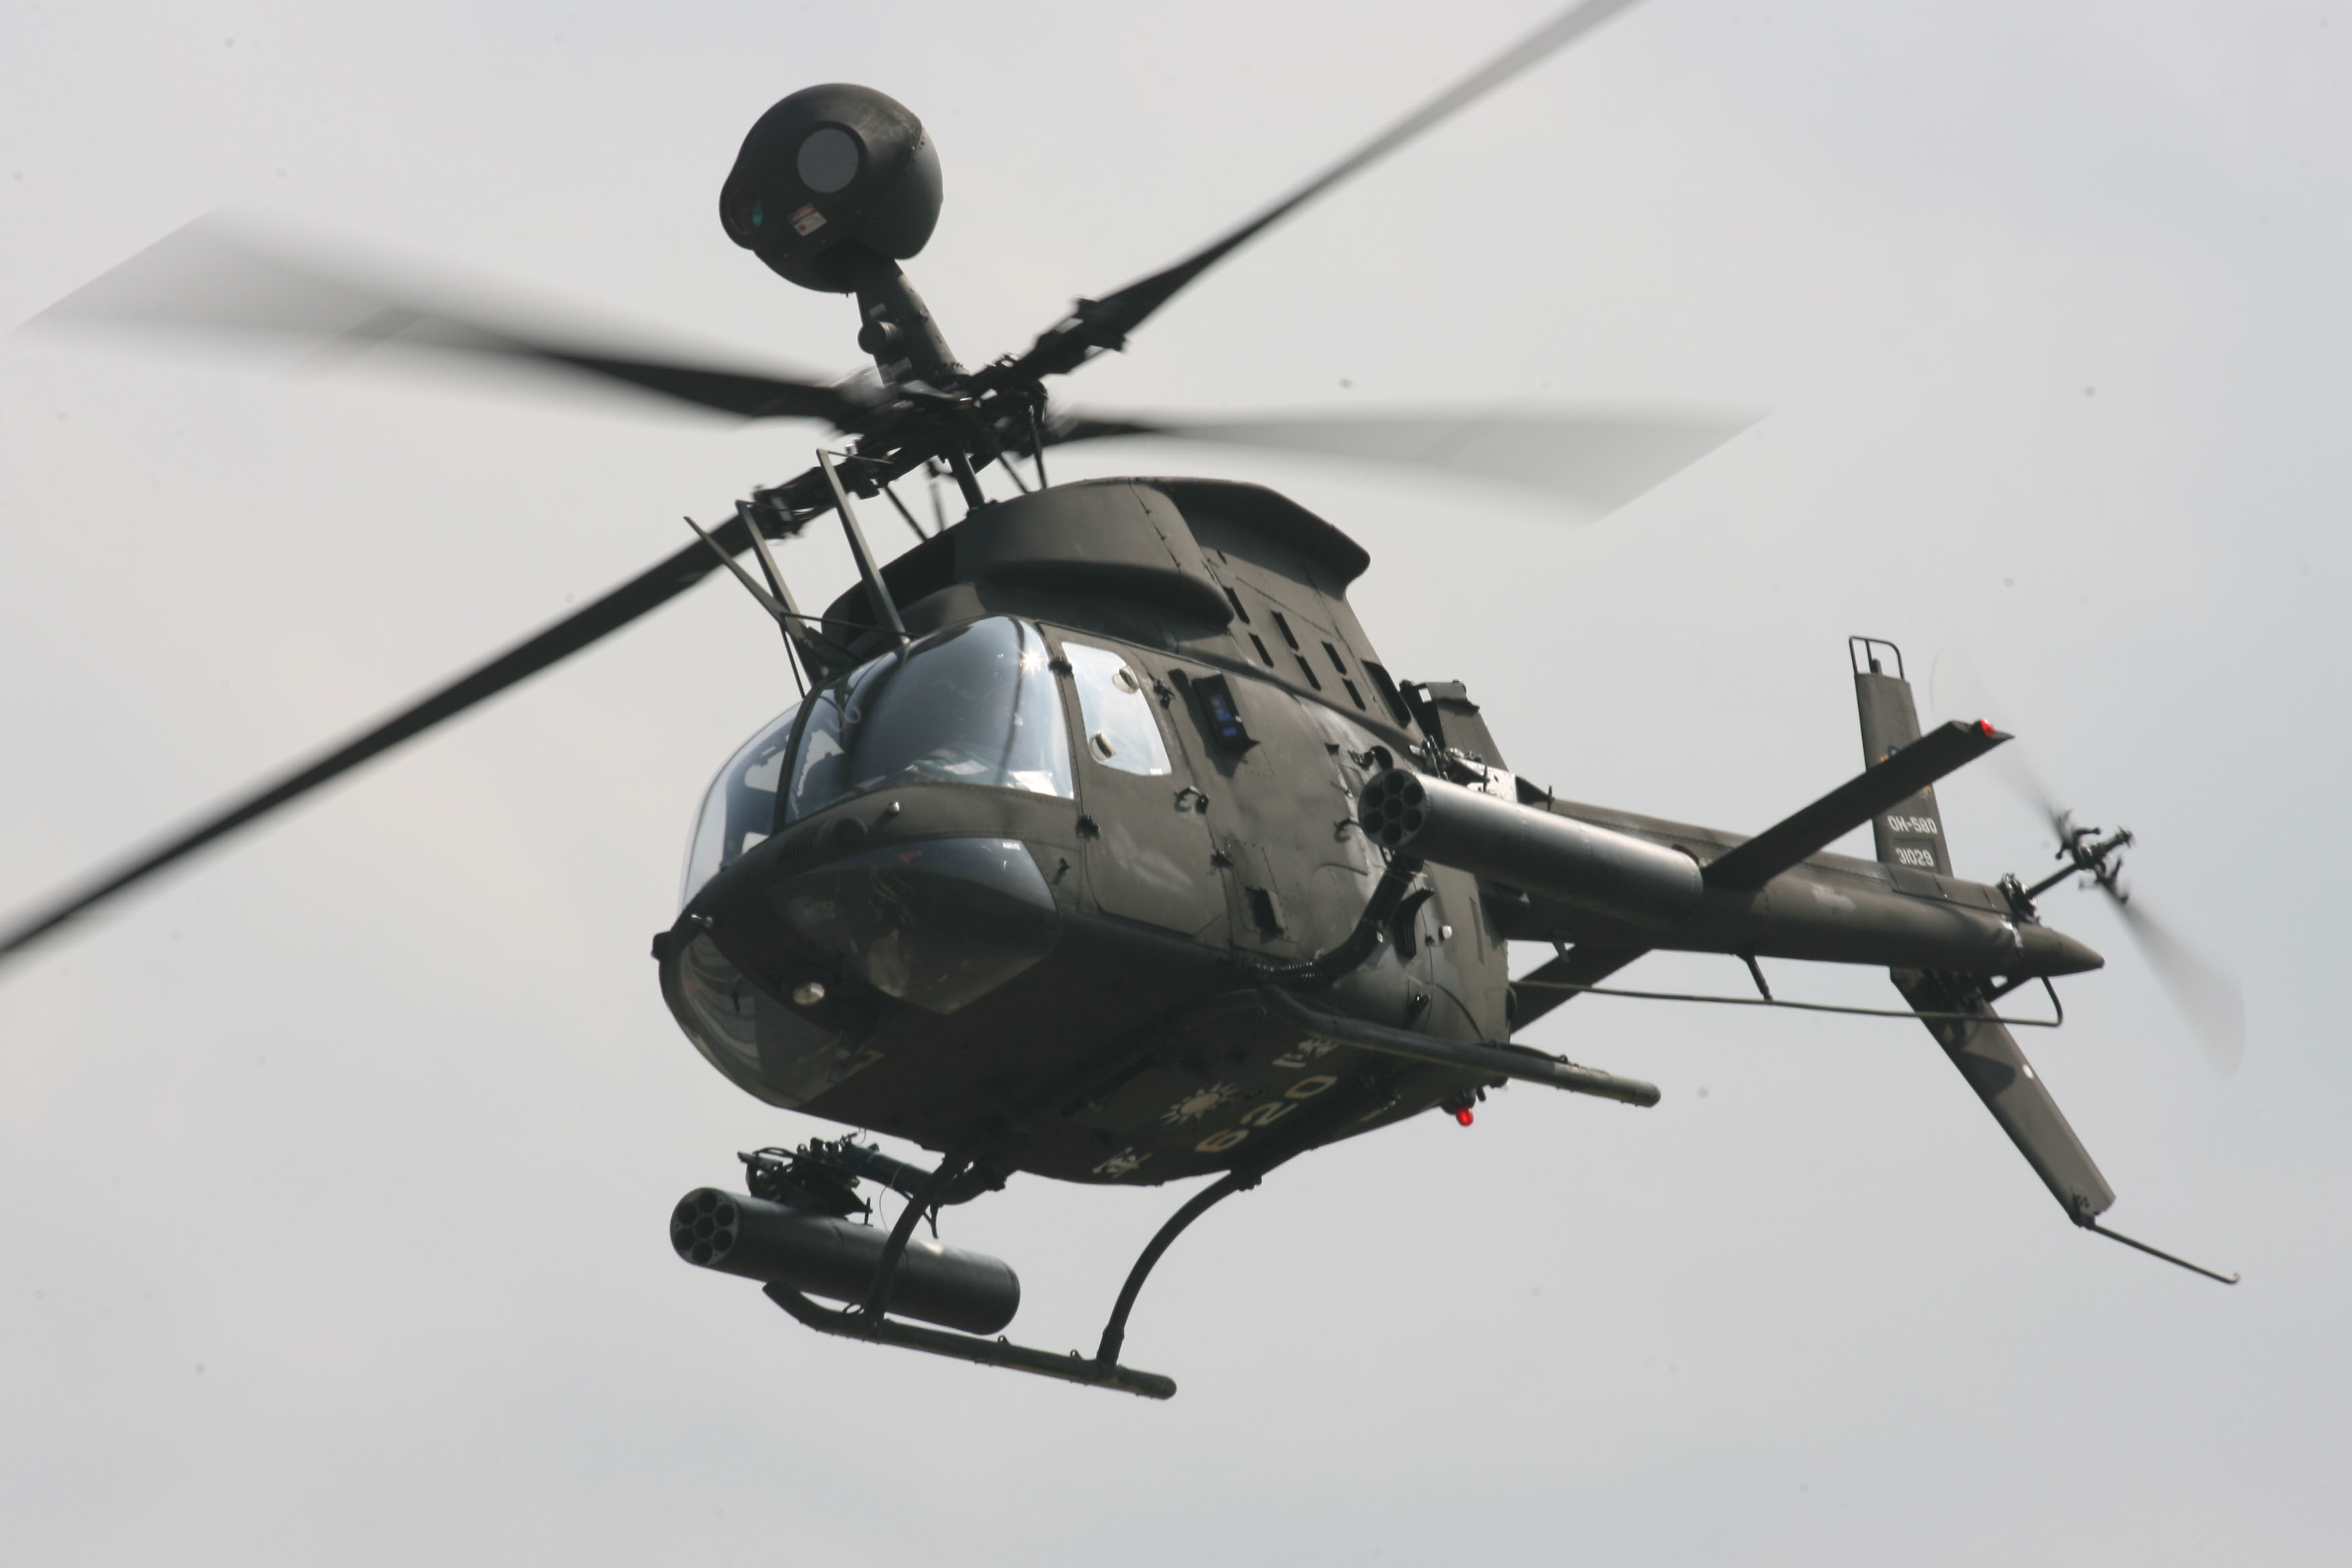 reconnaissance helicopter with Blog 298403 431 on SF 226 Bloodhound 226680317 as well Boeing Sikorsky Rah 66  anche in addition 27041 Vertolet Bell Uh 1y Venom in addition russianhelicopters moreover As 90 Artillery Uk.